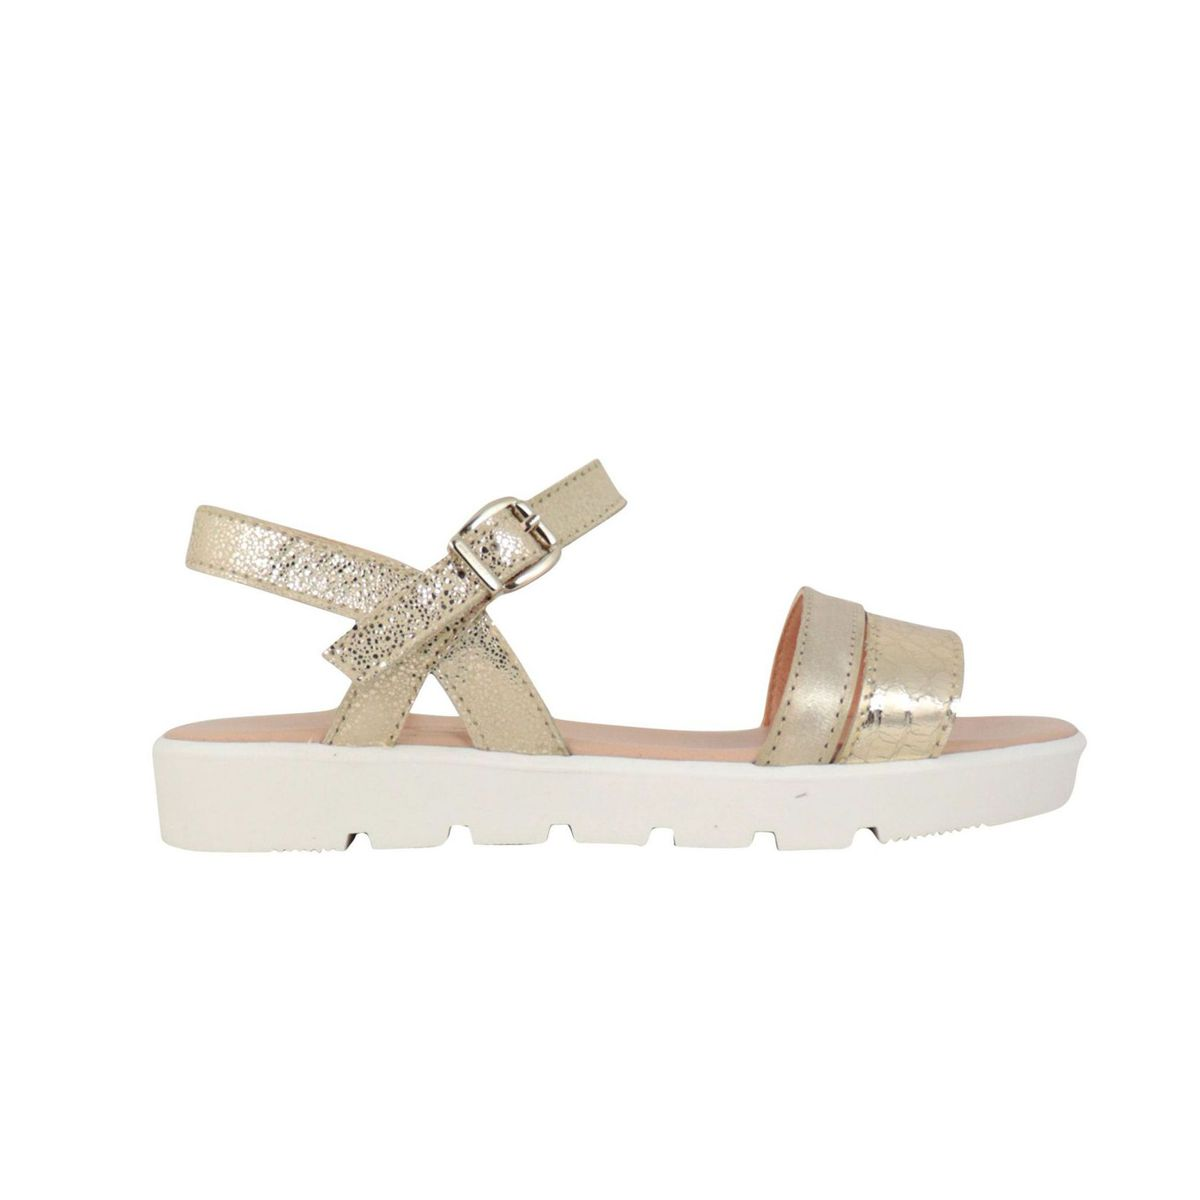 Leather sandal with buckles Platinum Clarys